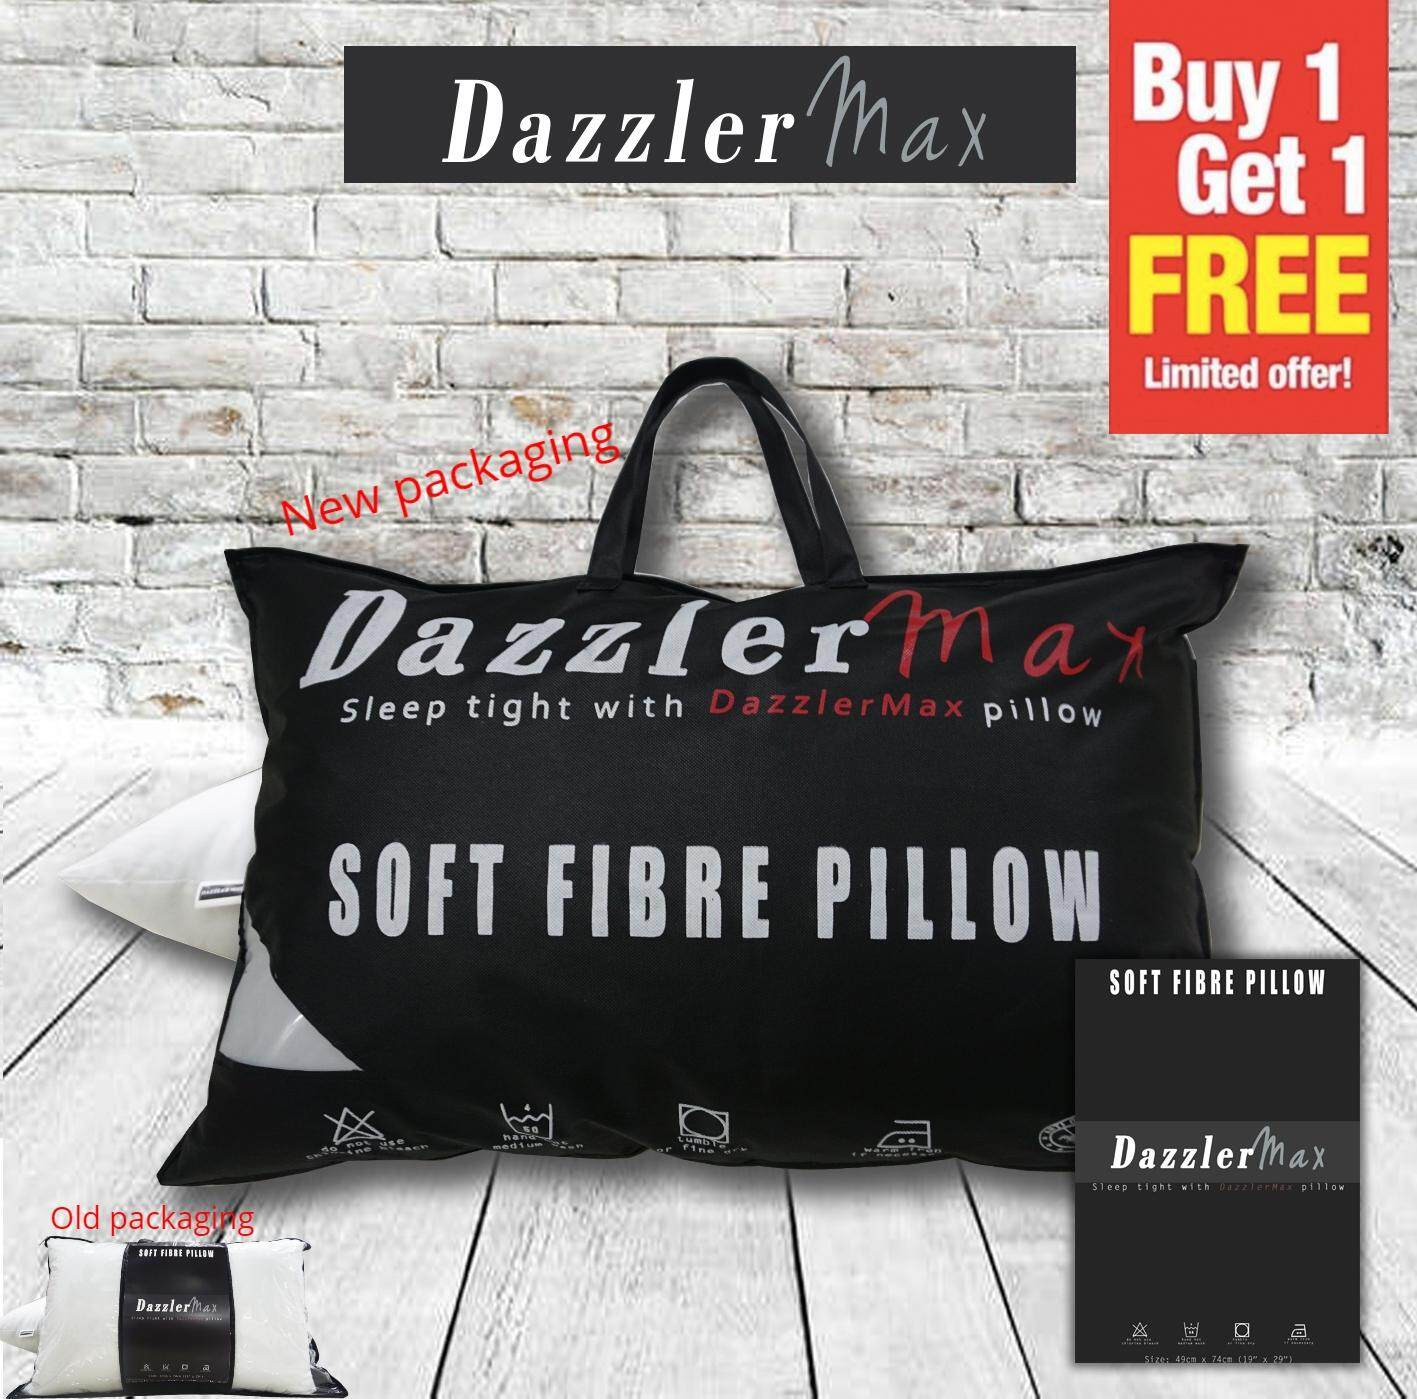 Dazzler Max Soft & Comfortable Polyester Fibre Five Star Bedding Good Quality Hotel Pillow Large Size 19''x29''  {Buy 1 Free 1}